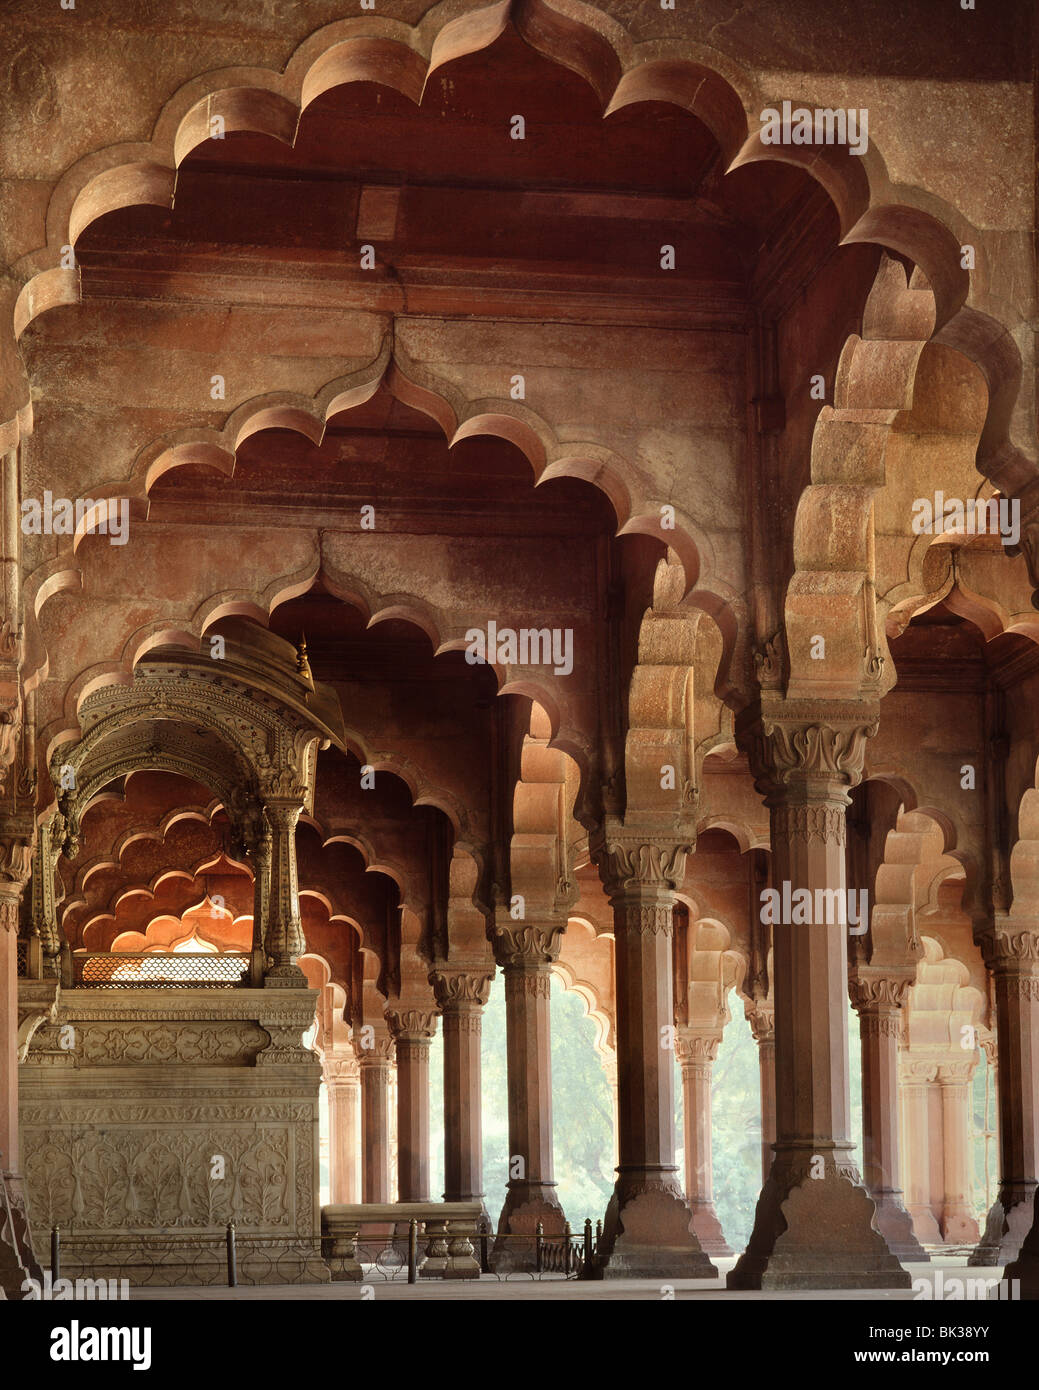 The Throne of Akbar, Red Fort, UNESCO World Heritage Site, Delhi, India, Asia - Stock Image